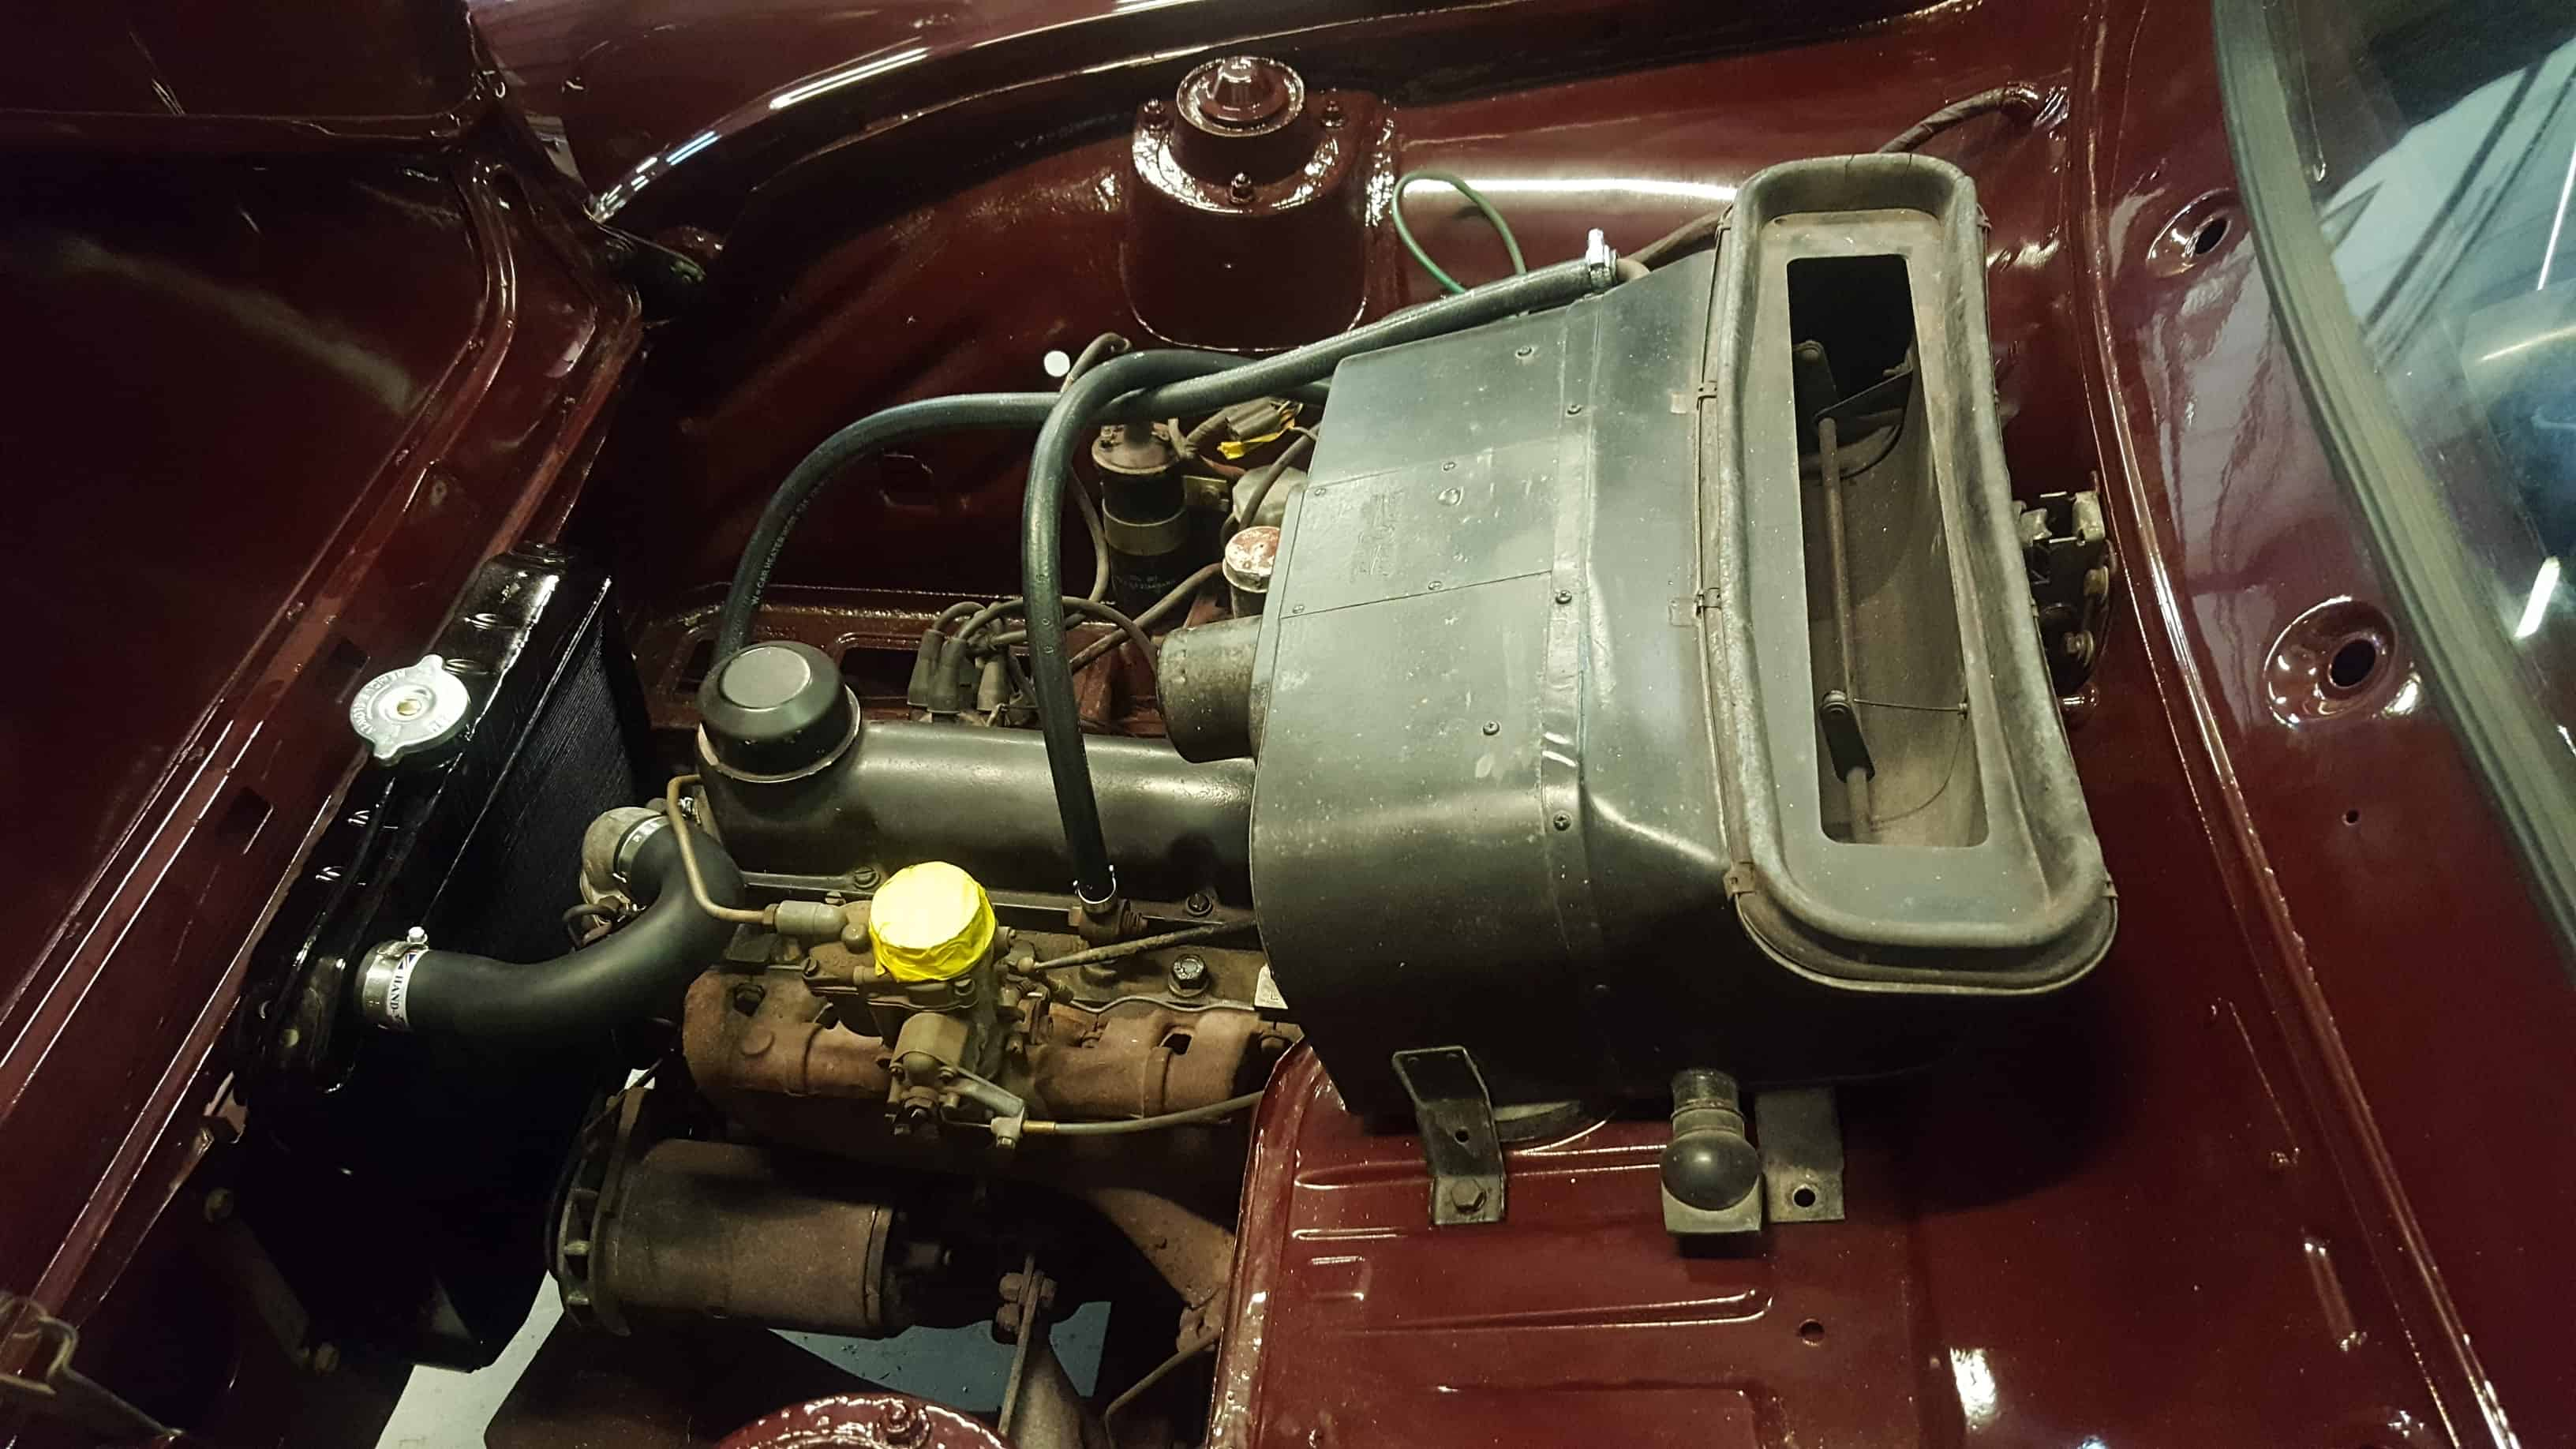 1961 Ford Anglia 105E Rebuild - back on the road after 15 years laid up